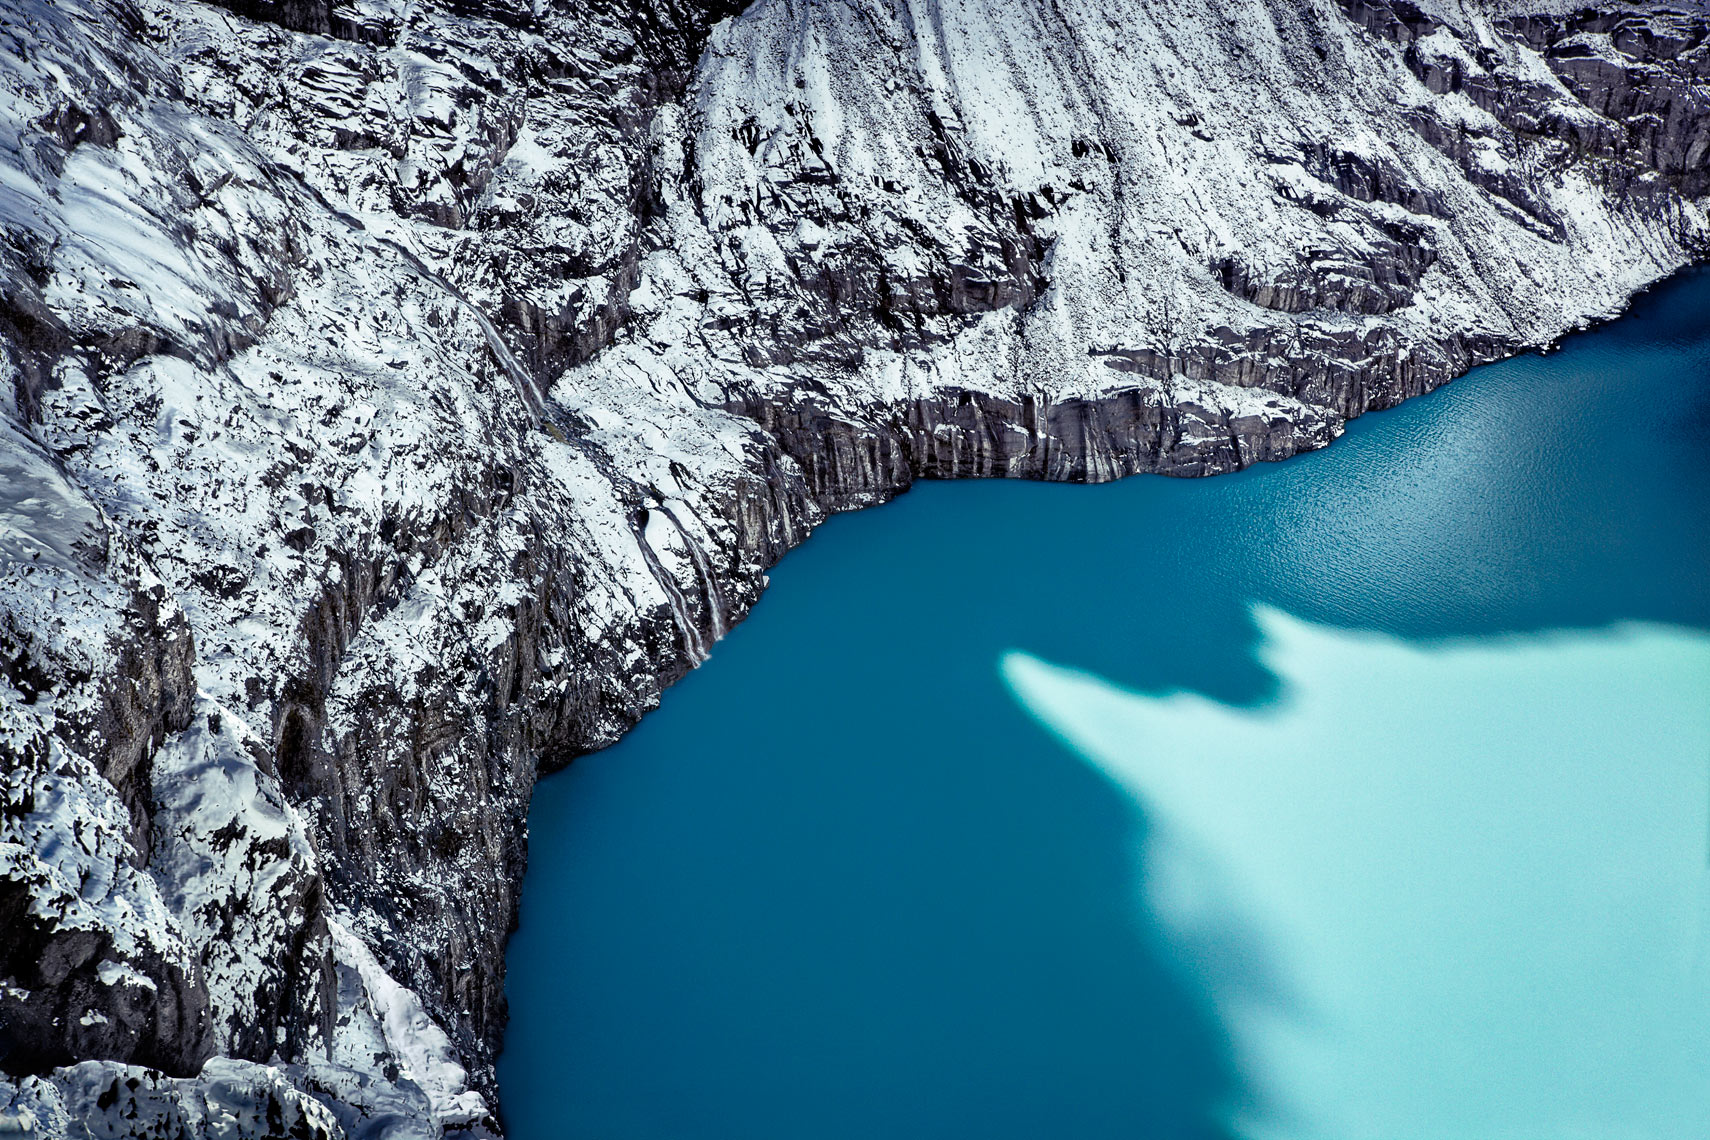 "One of Milford's glacial lakes, formed by erosion and melting of ice at the glacier's base. The vibrant blue is the result of light reflecting off tiny pieces of rock, ""rock flour"", that become suspended in the water as the glacier melts."